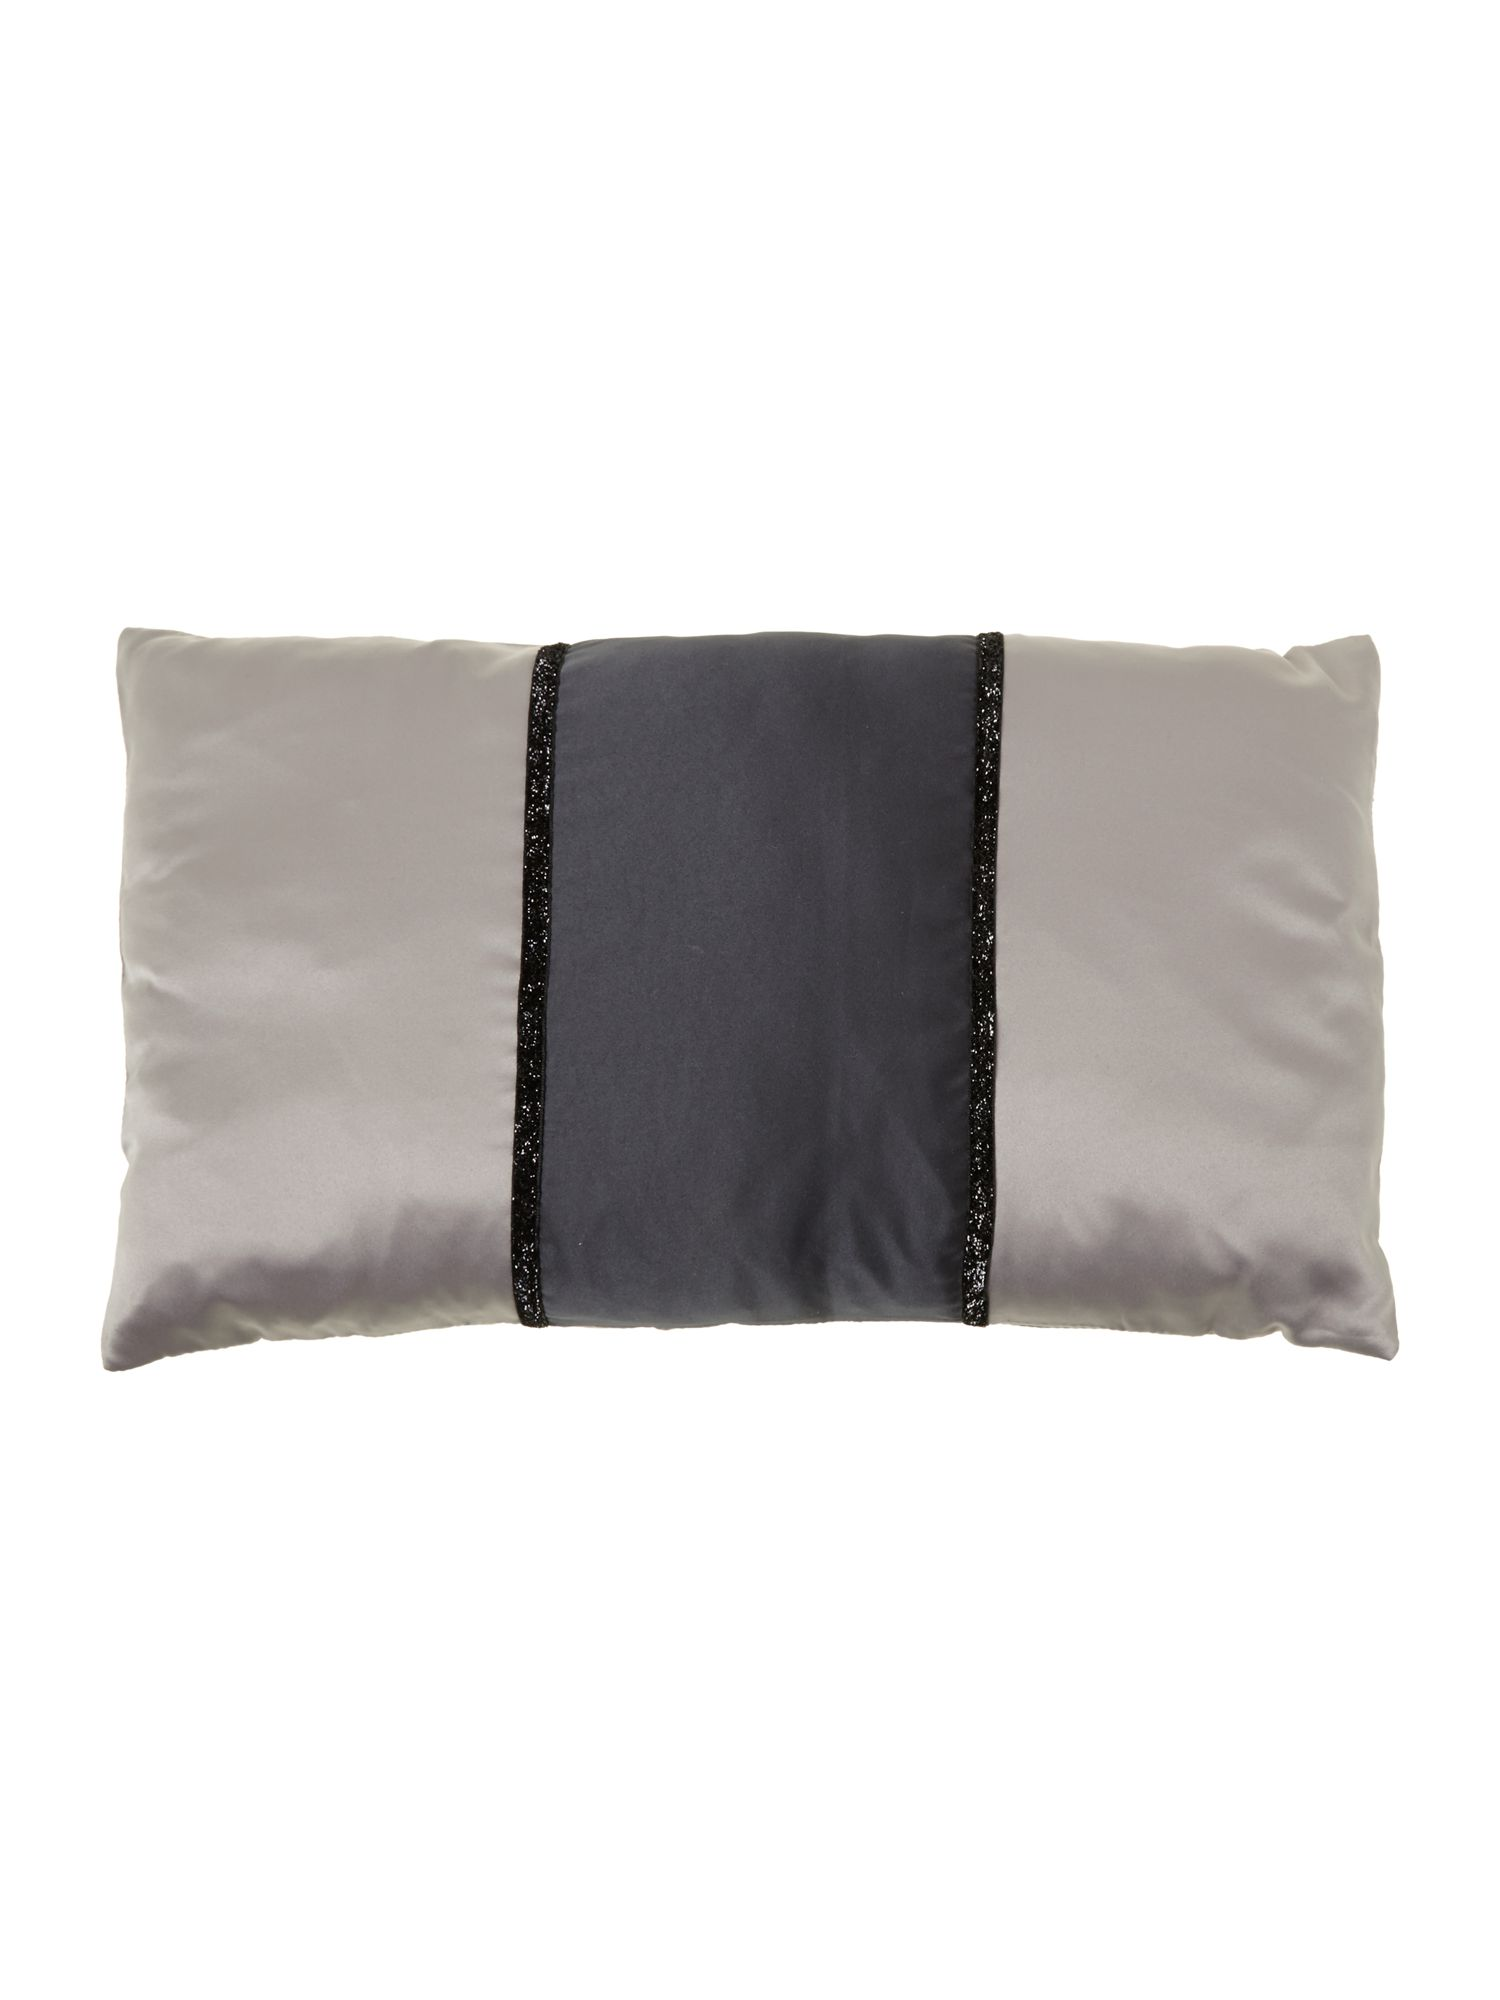 Aura smoke cushion 30x50